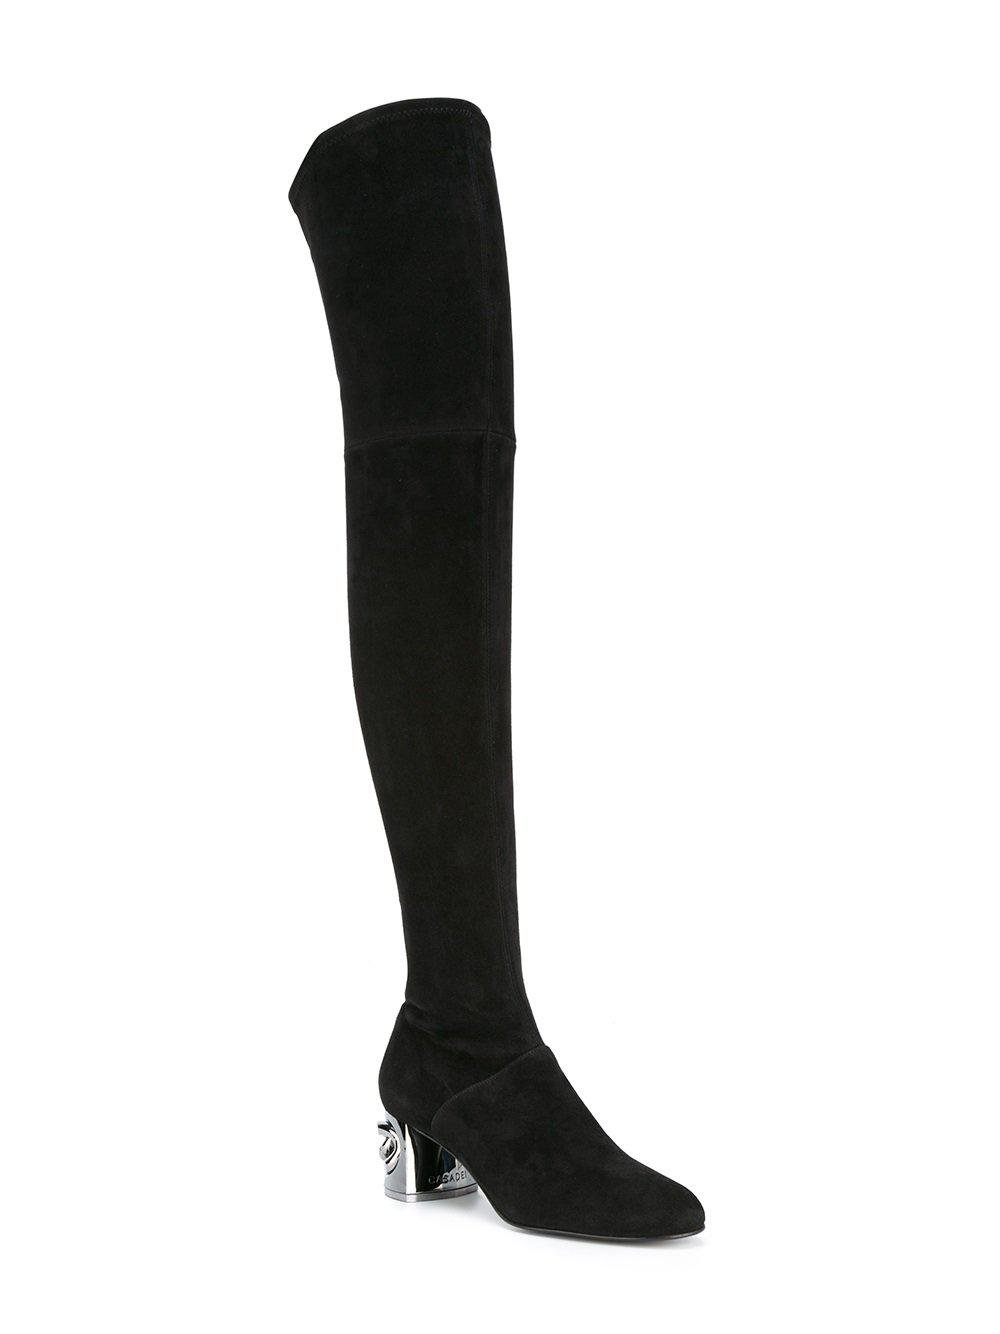 8745dabeecf Lyst - Casadei Maxi Chain Thigh-length Boots in Black